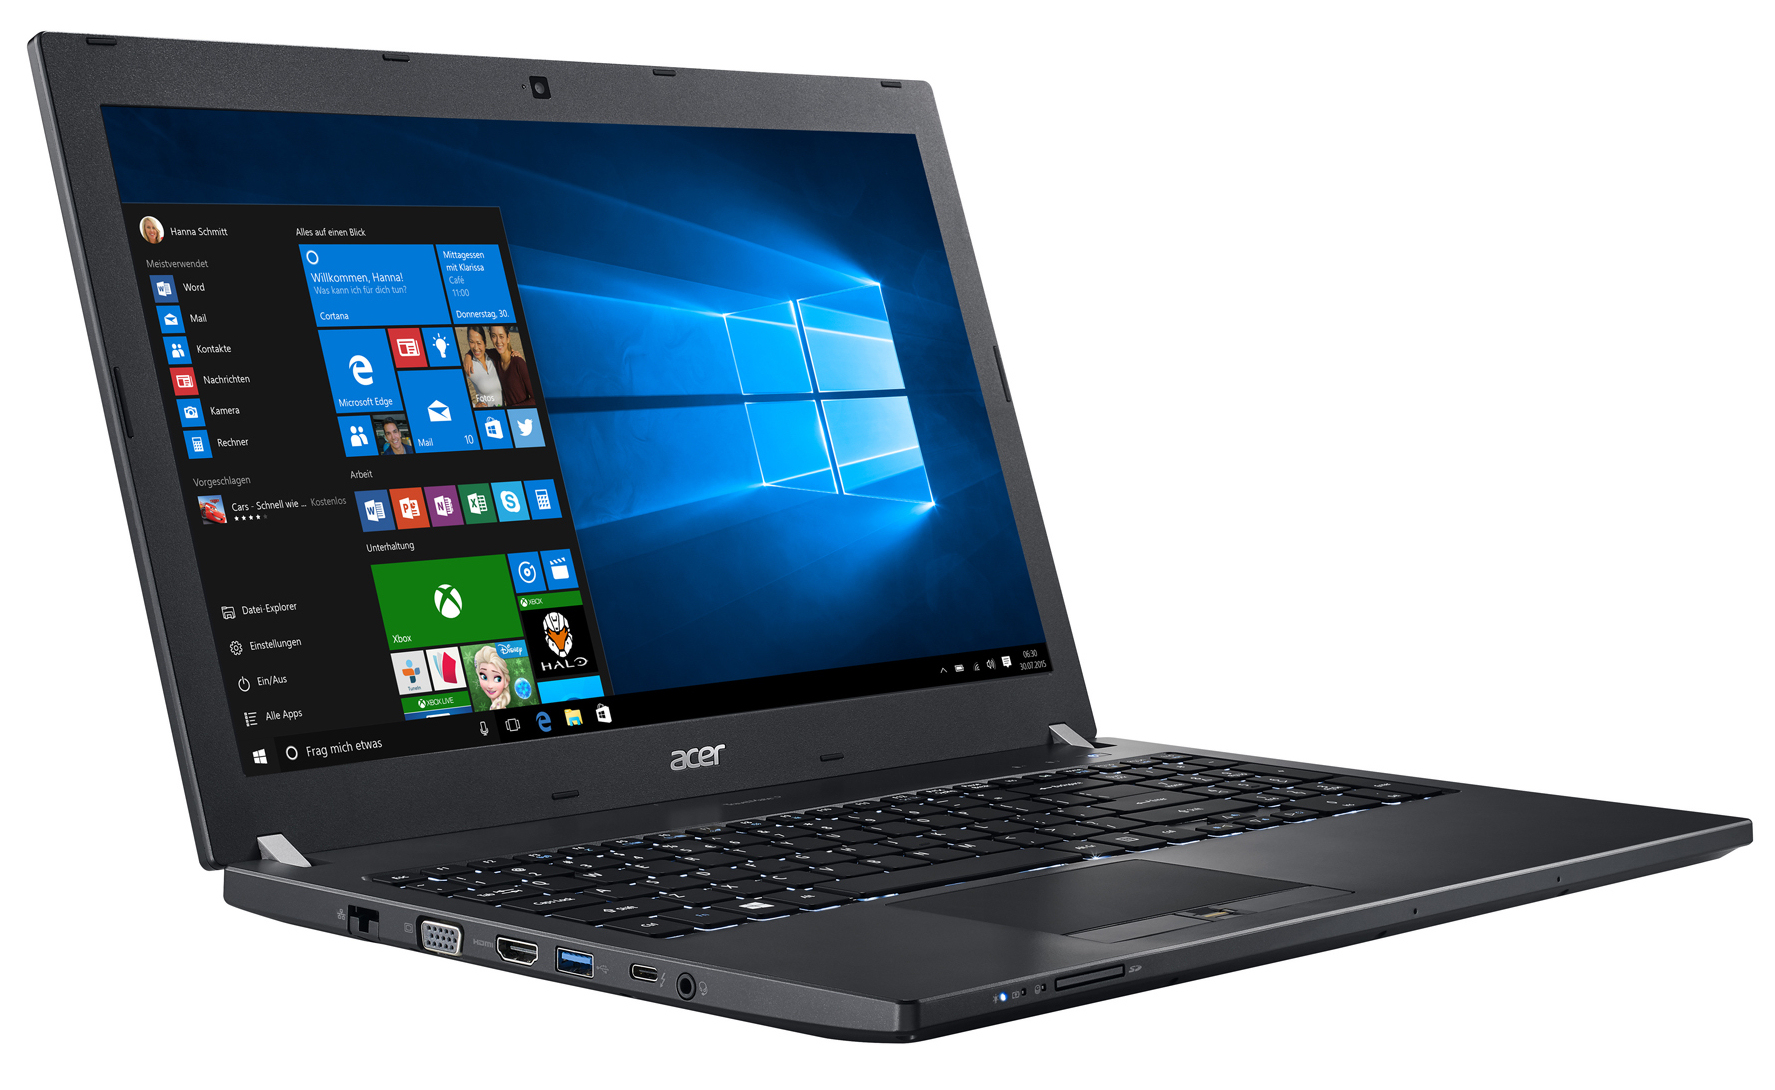 Acer TravelMate P658-G2-MG-7327